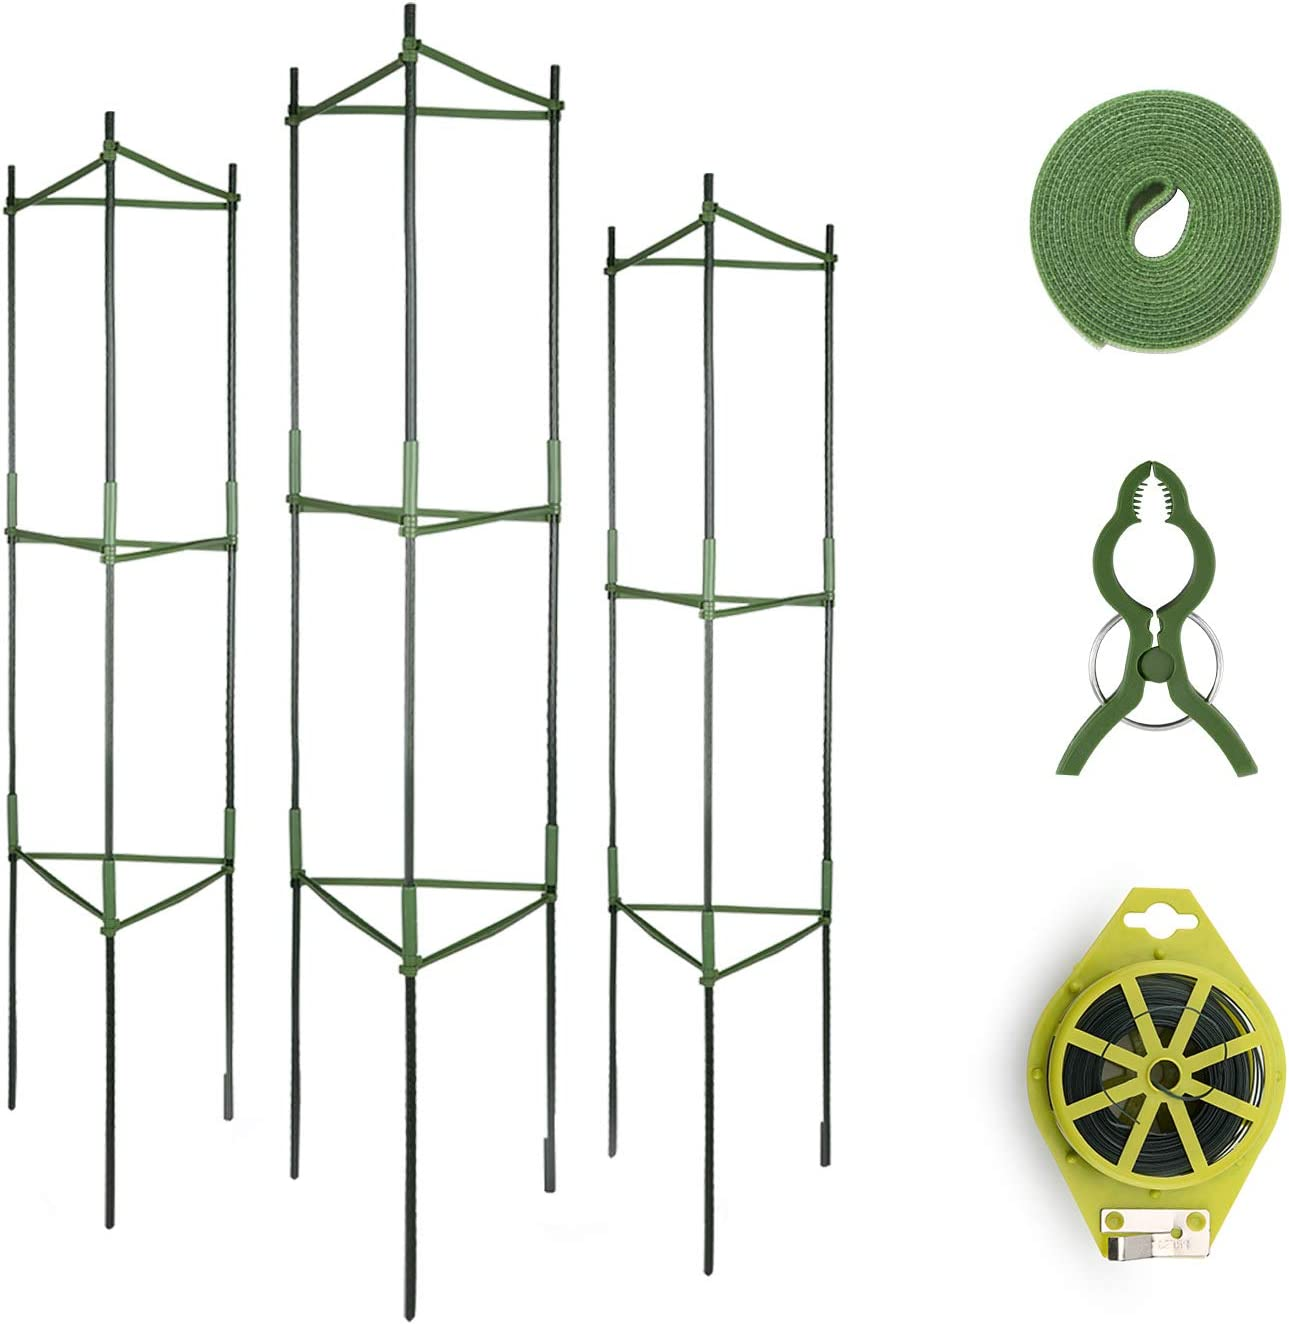 GROWNEER 6 Packs Plant Cages Assembled Tomato Garden Cages Stakes Vegetable Trellis, with 18Pcs Clips, 78 Inches Garden Ties and 328 Feet Twist Tie, for Vertical Climbing Plants